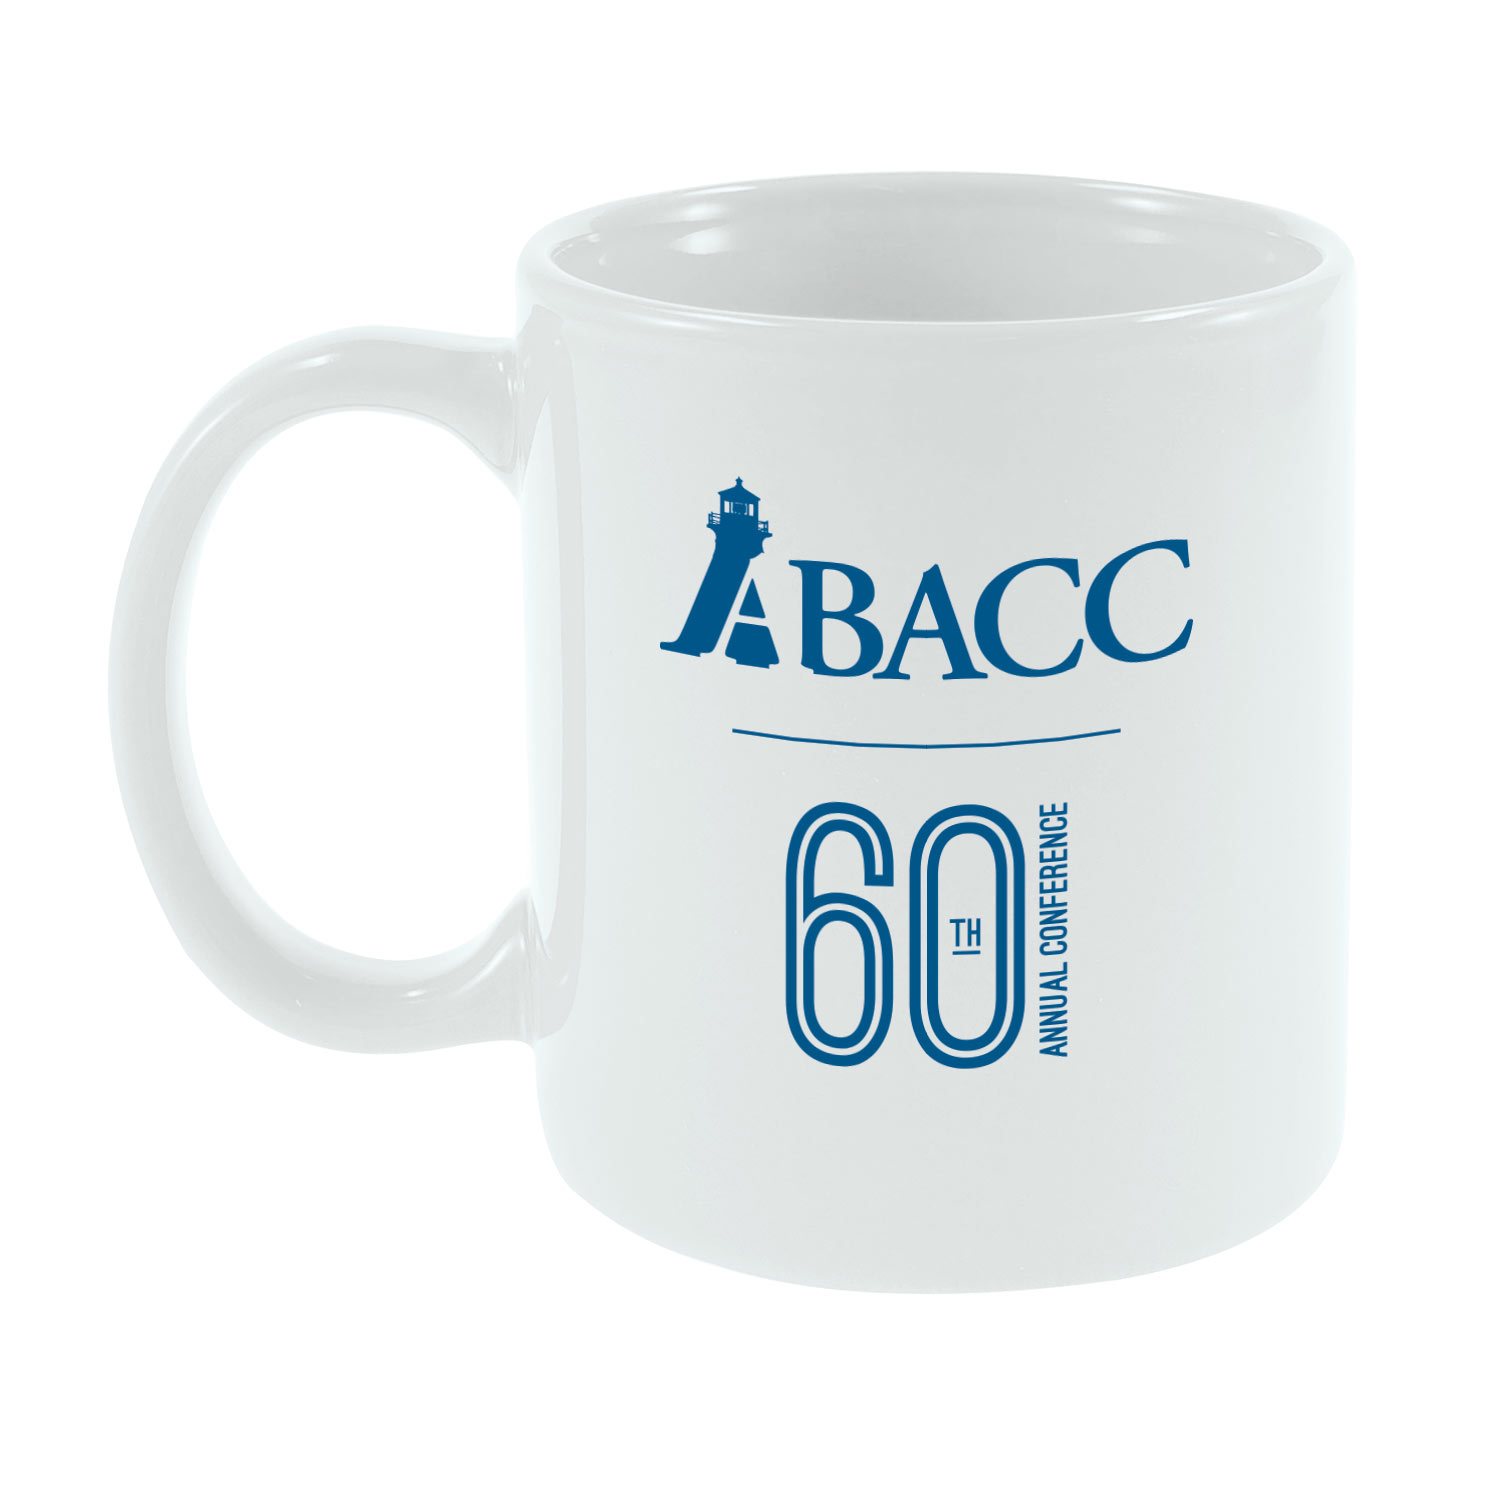 ABACC 60th Coffee Cup